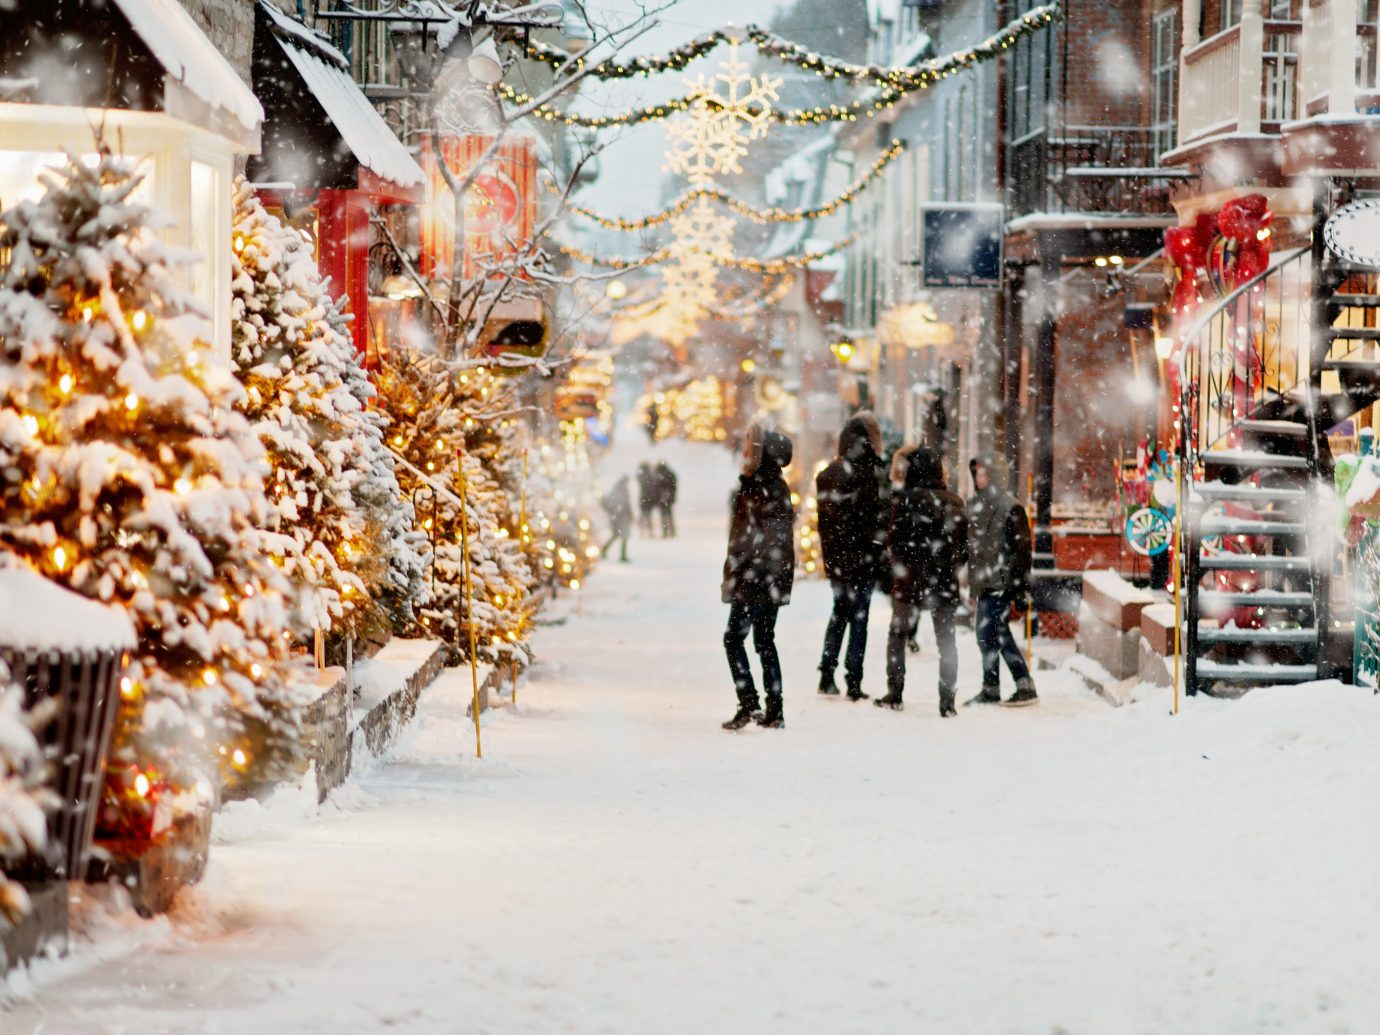 Canada Montreal Toronto Trip Ideas snow Winter outdoor freezing tree Christmas tradition City event branch